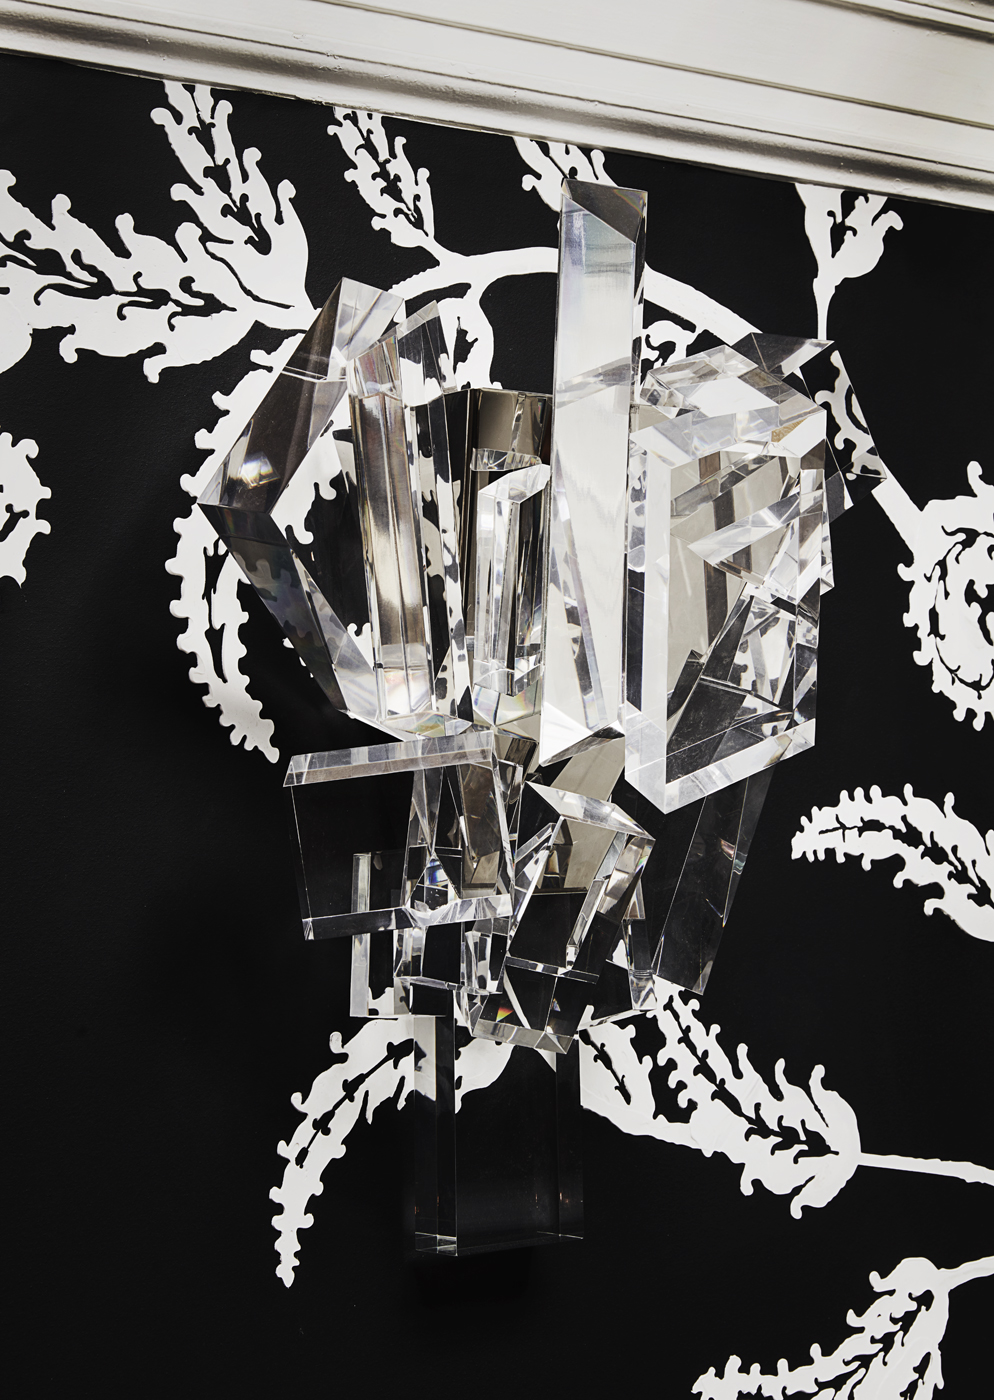 Ice crystal sconce by William Haines at 2017 Kips Bay Decorator Show House | Savage Interior Design